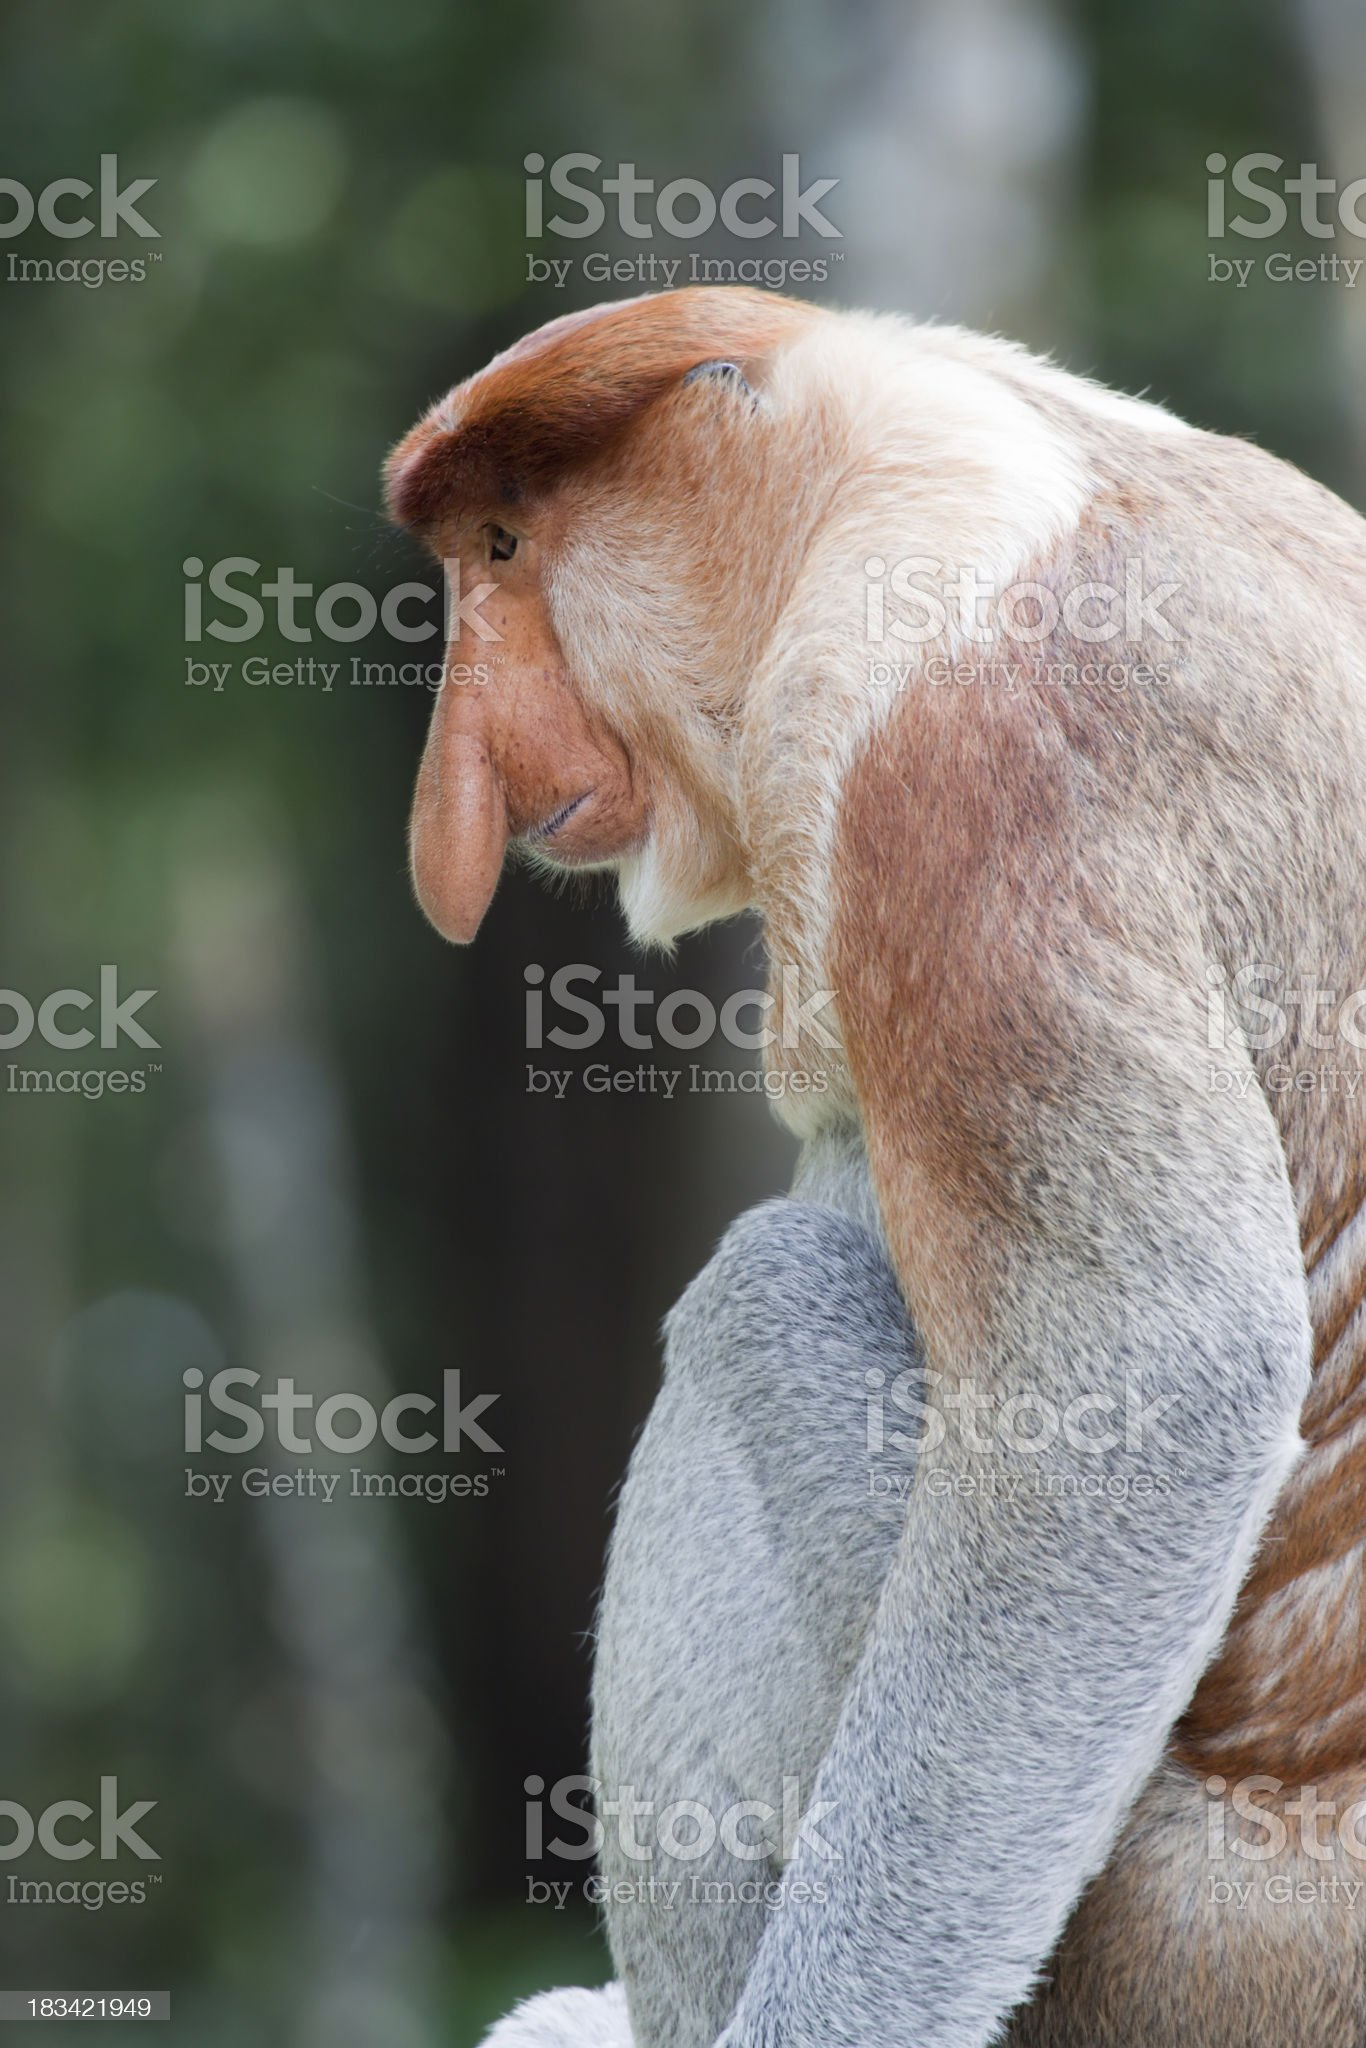 Proboscis monkey profile royalty-free stock photo